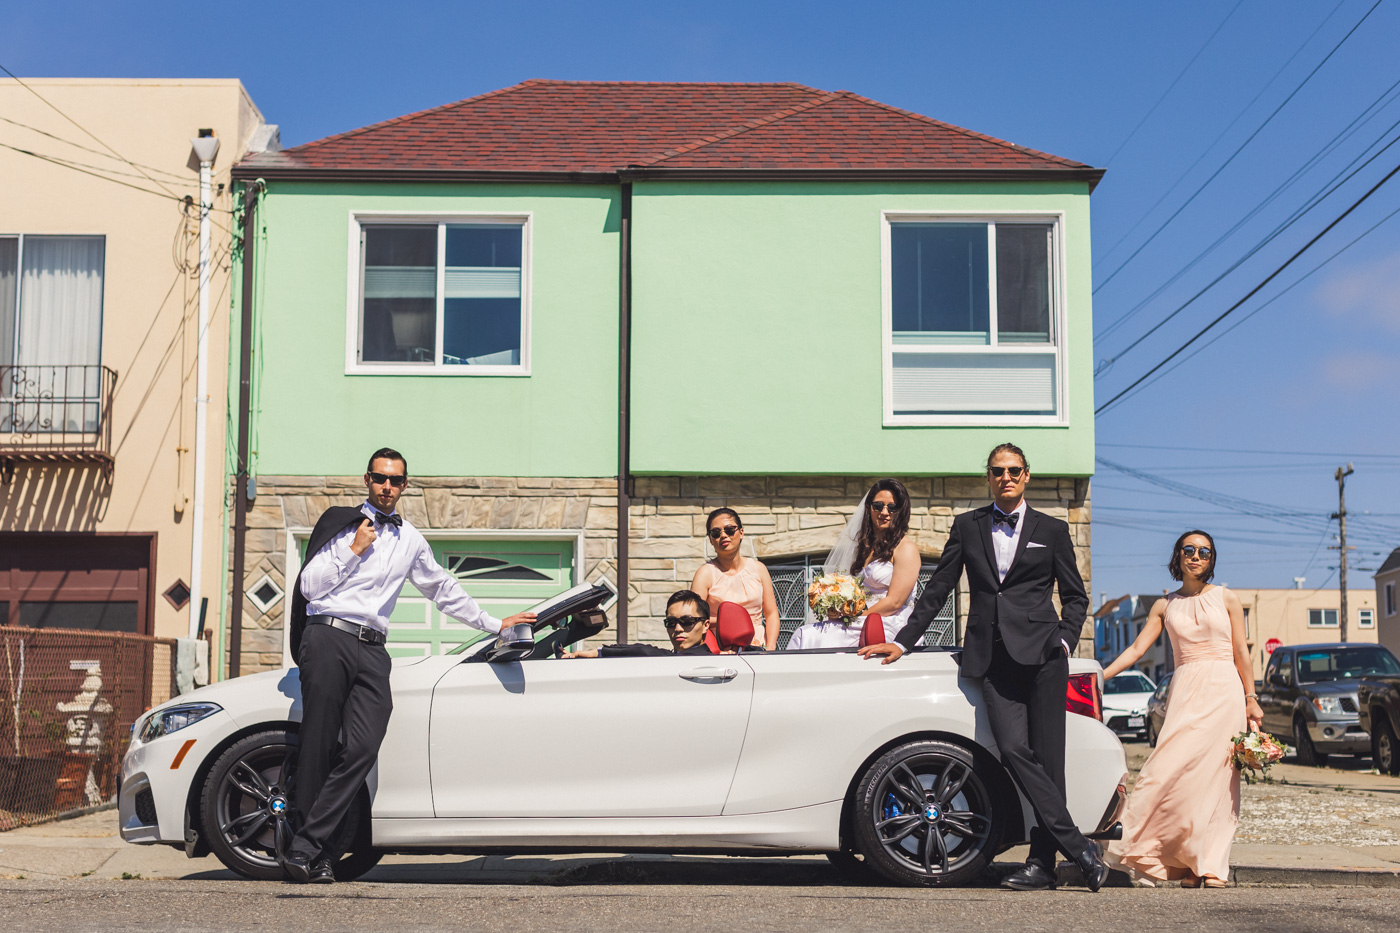 wedding-party-group-photo-in-convertible-san-francisco